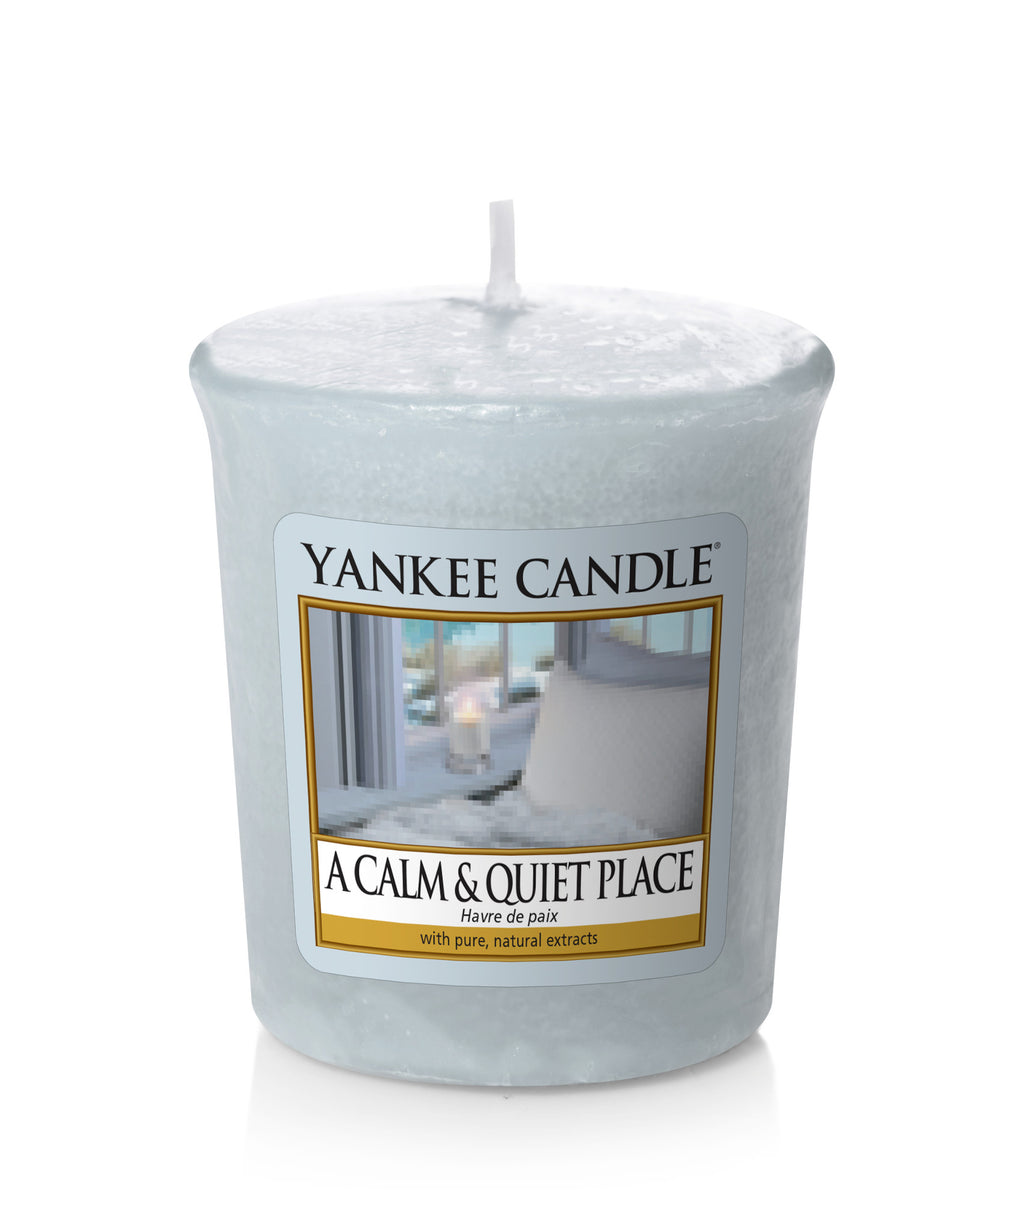 A CALM & QUIET PLACE -Yankee Candle- Candela Sampler